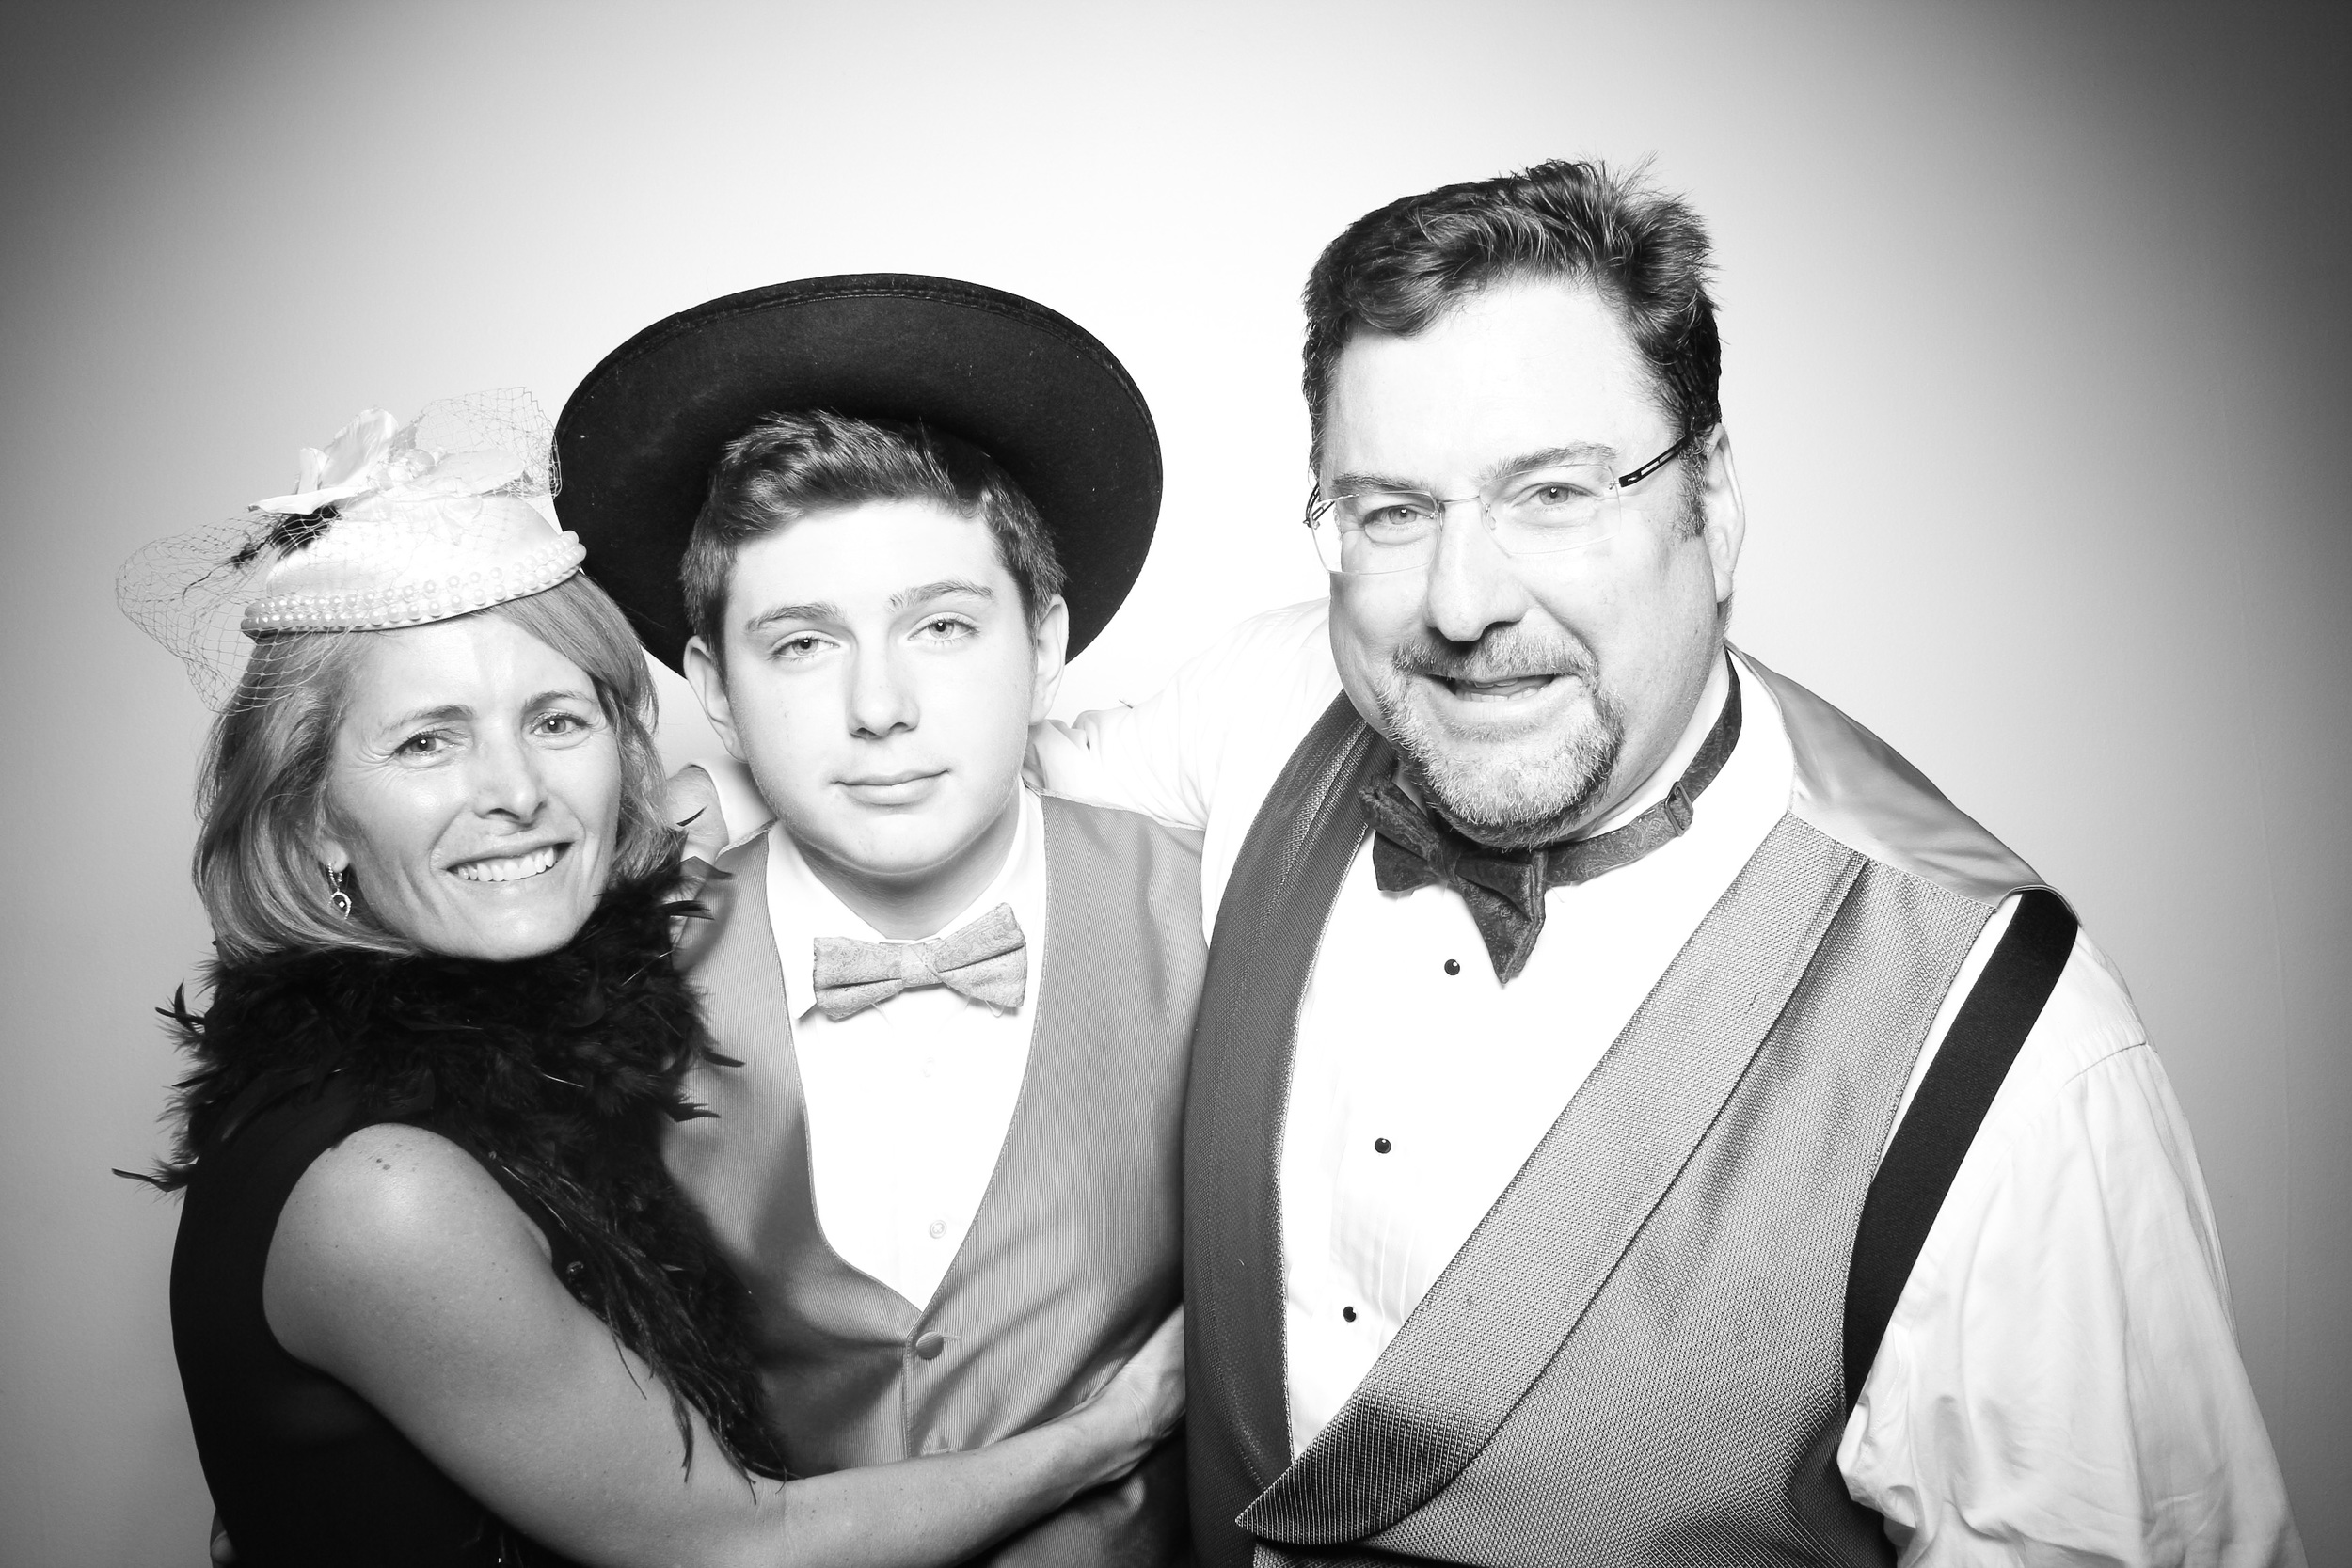 Ryan poses for a photo booth picture with his mom and dad at Venue One!